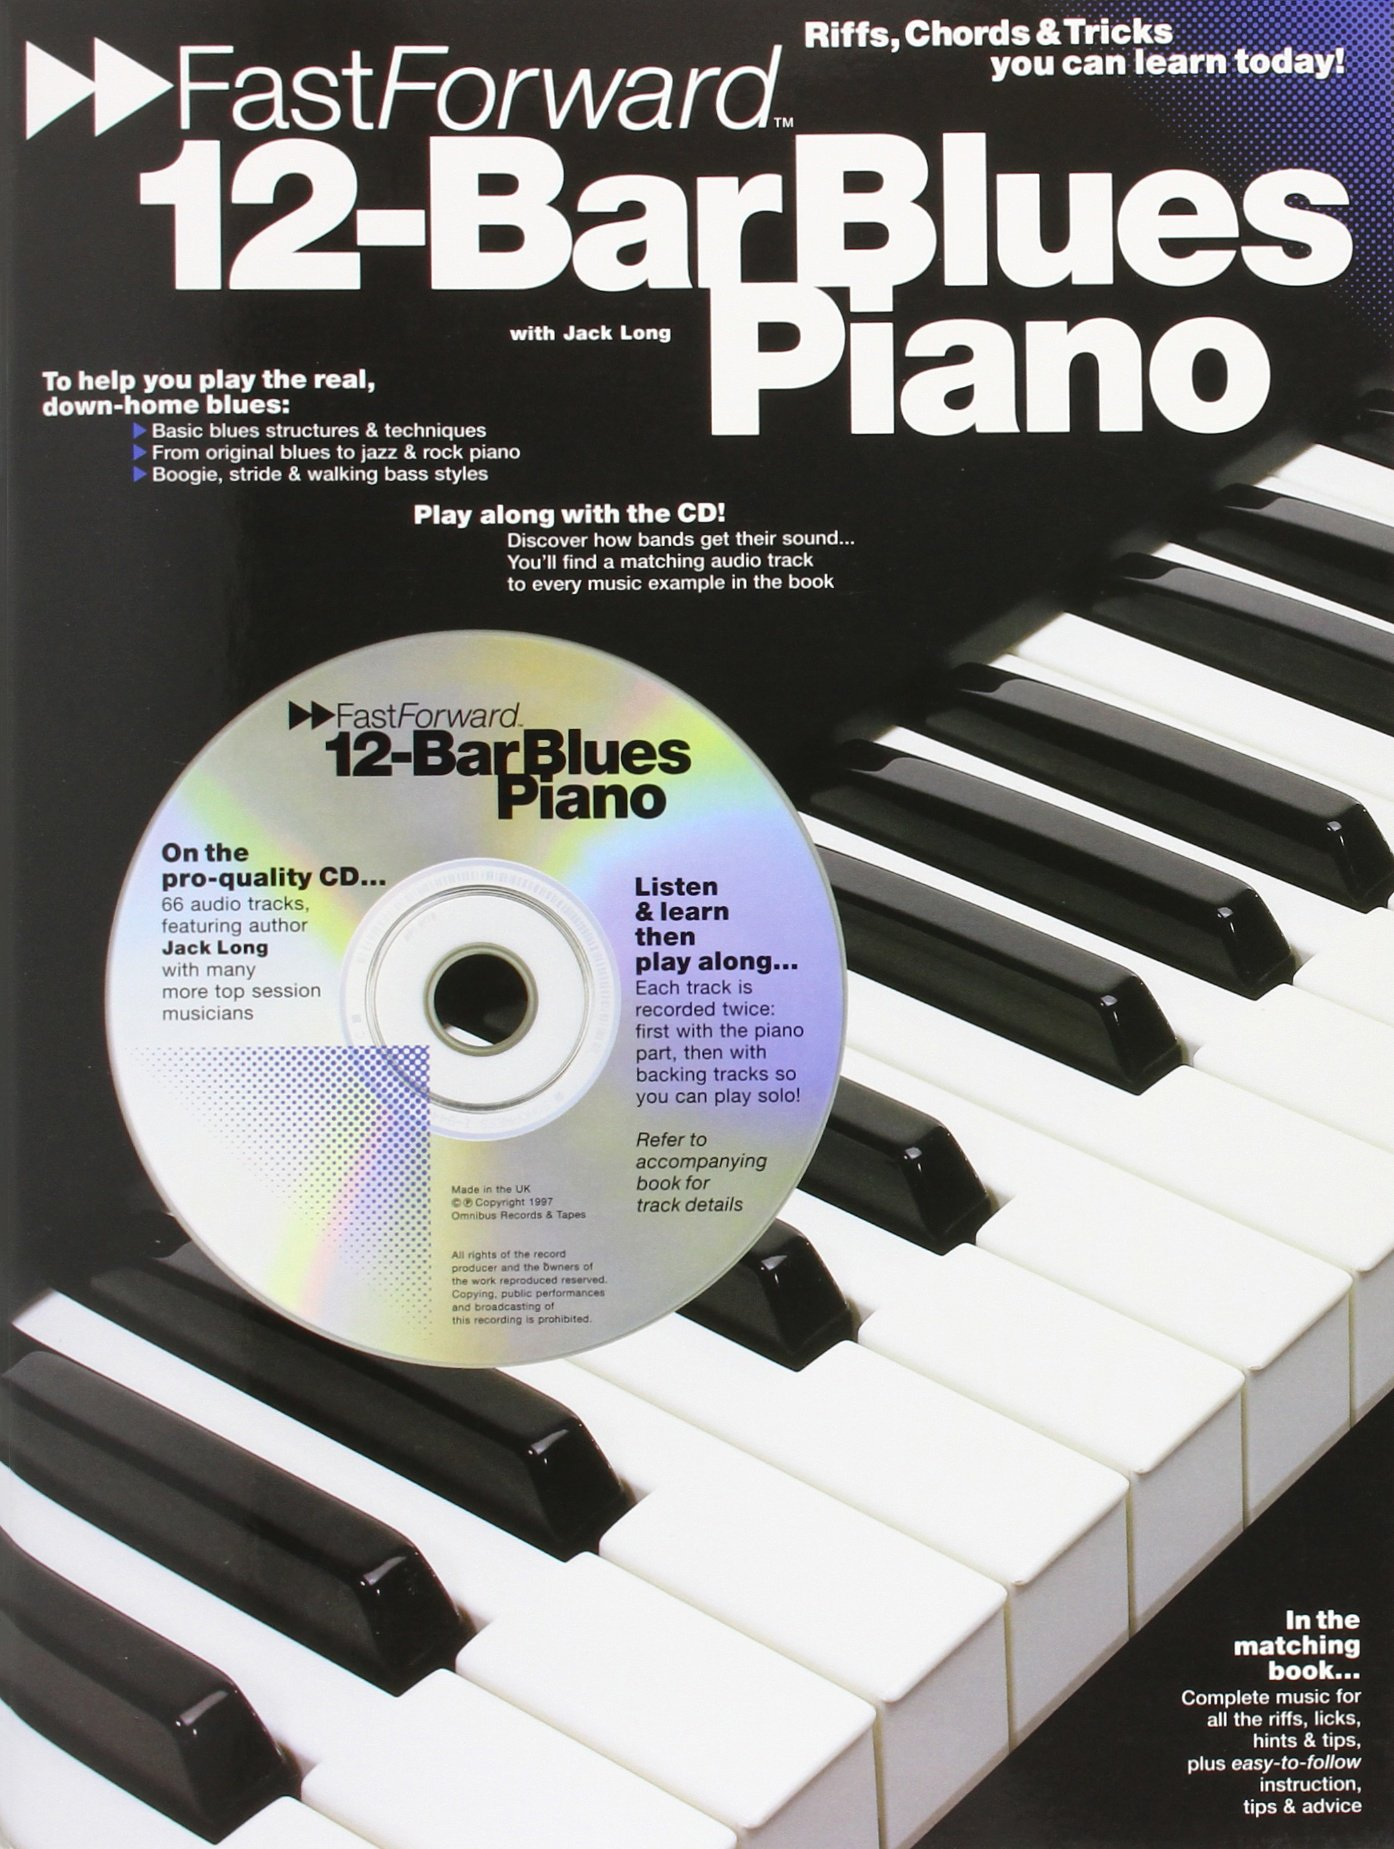 12 bar blues piano riffs chords tricks you can learn today 12 bar blues piano riffs chords tricks you can learn today fast forward jack long 9780711945210 amazon books hexwebz Images